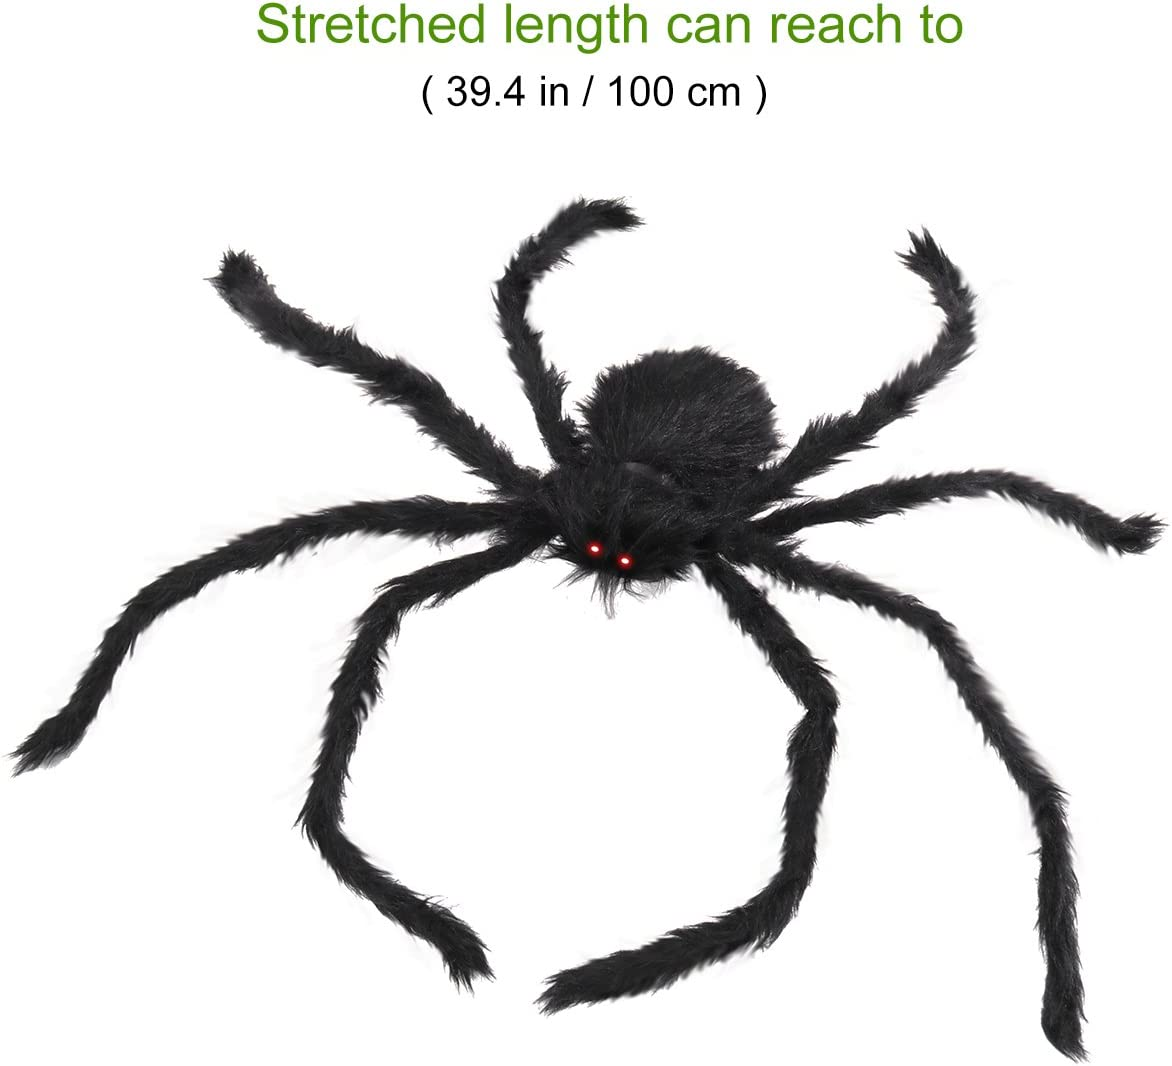 Halloween Decorations Outdoor Giant Spider with LED Eyes Plush Toy Hairy Spider for Halloween Party 100CM